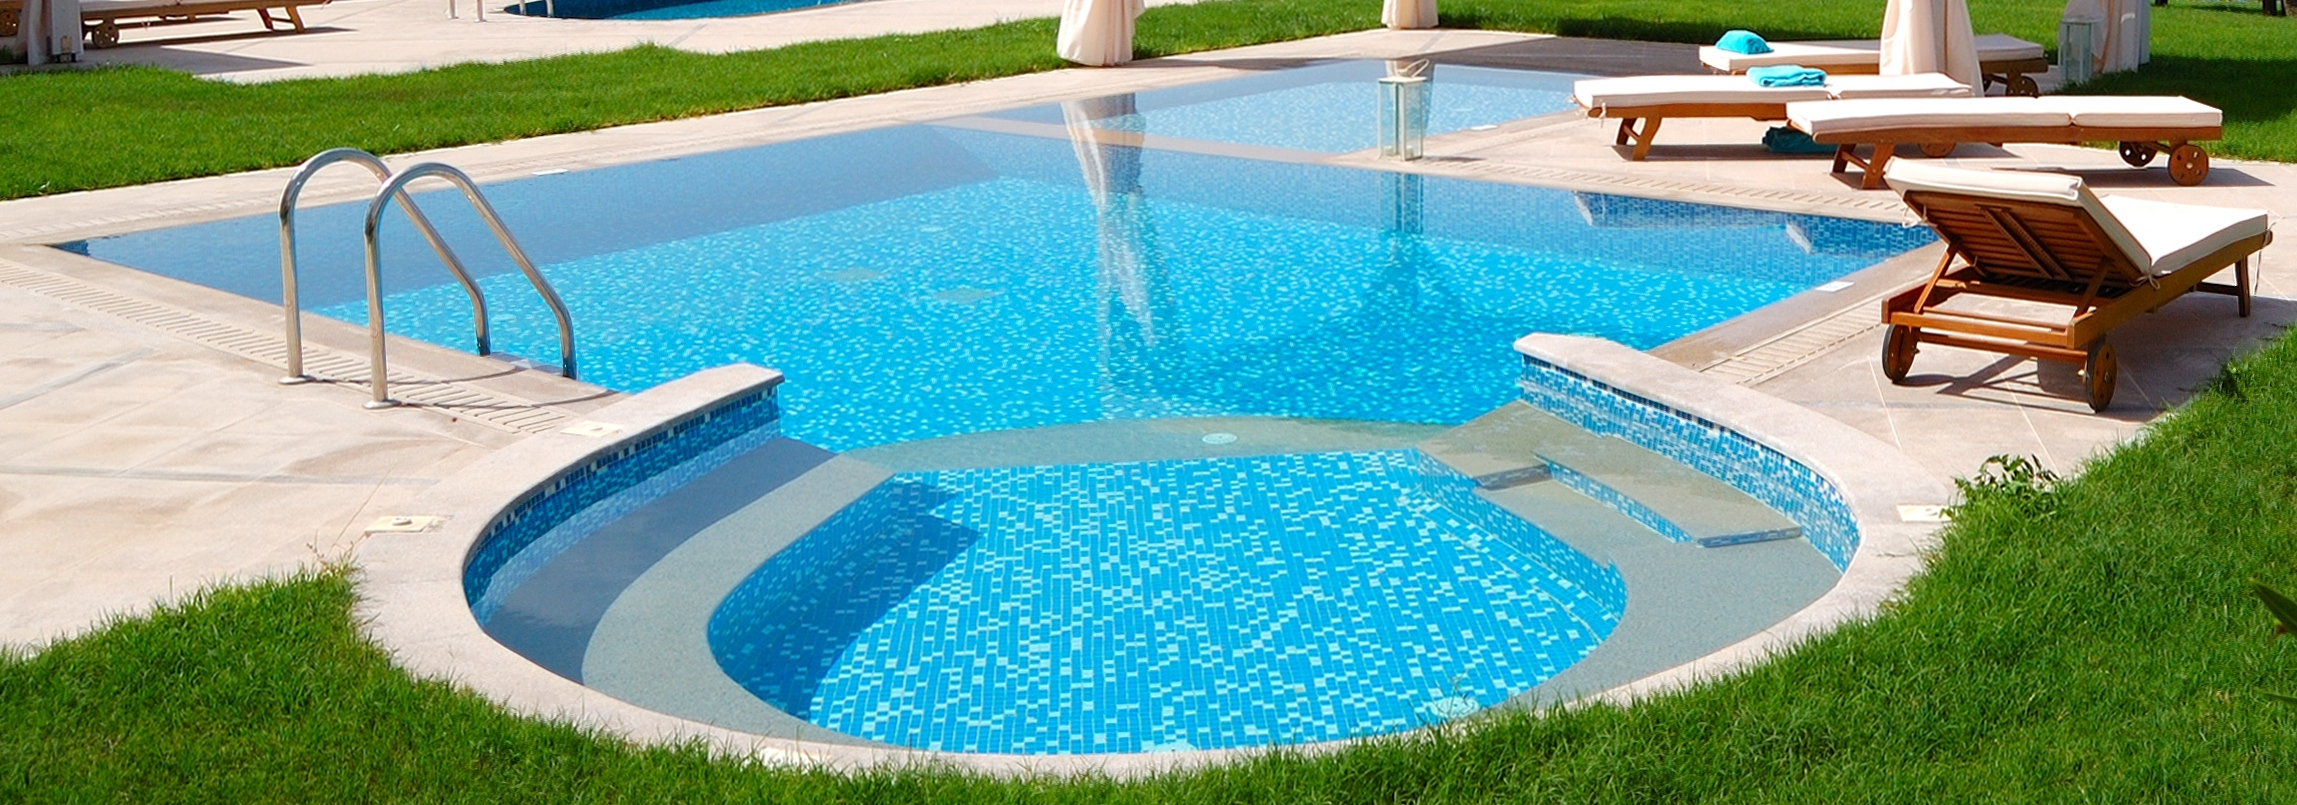 Piscinas for Ofertas de piscinas